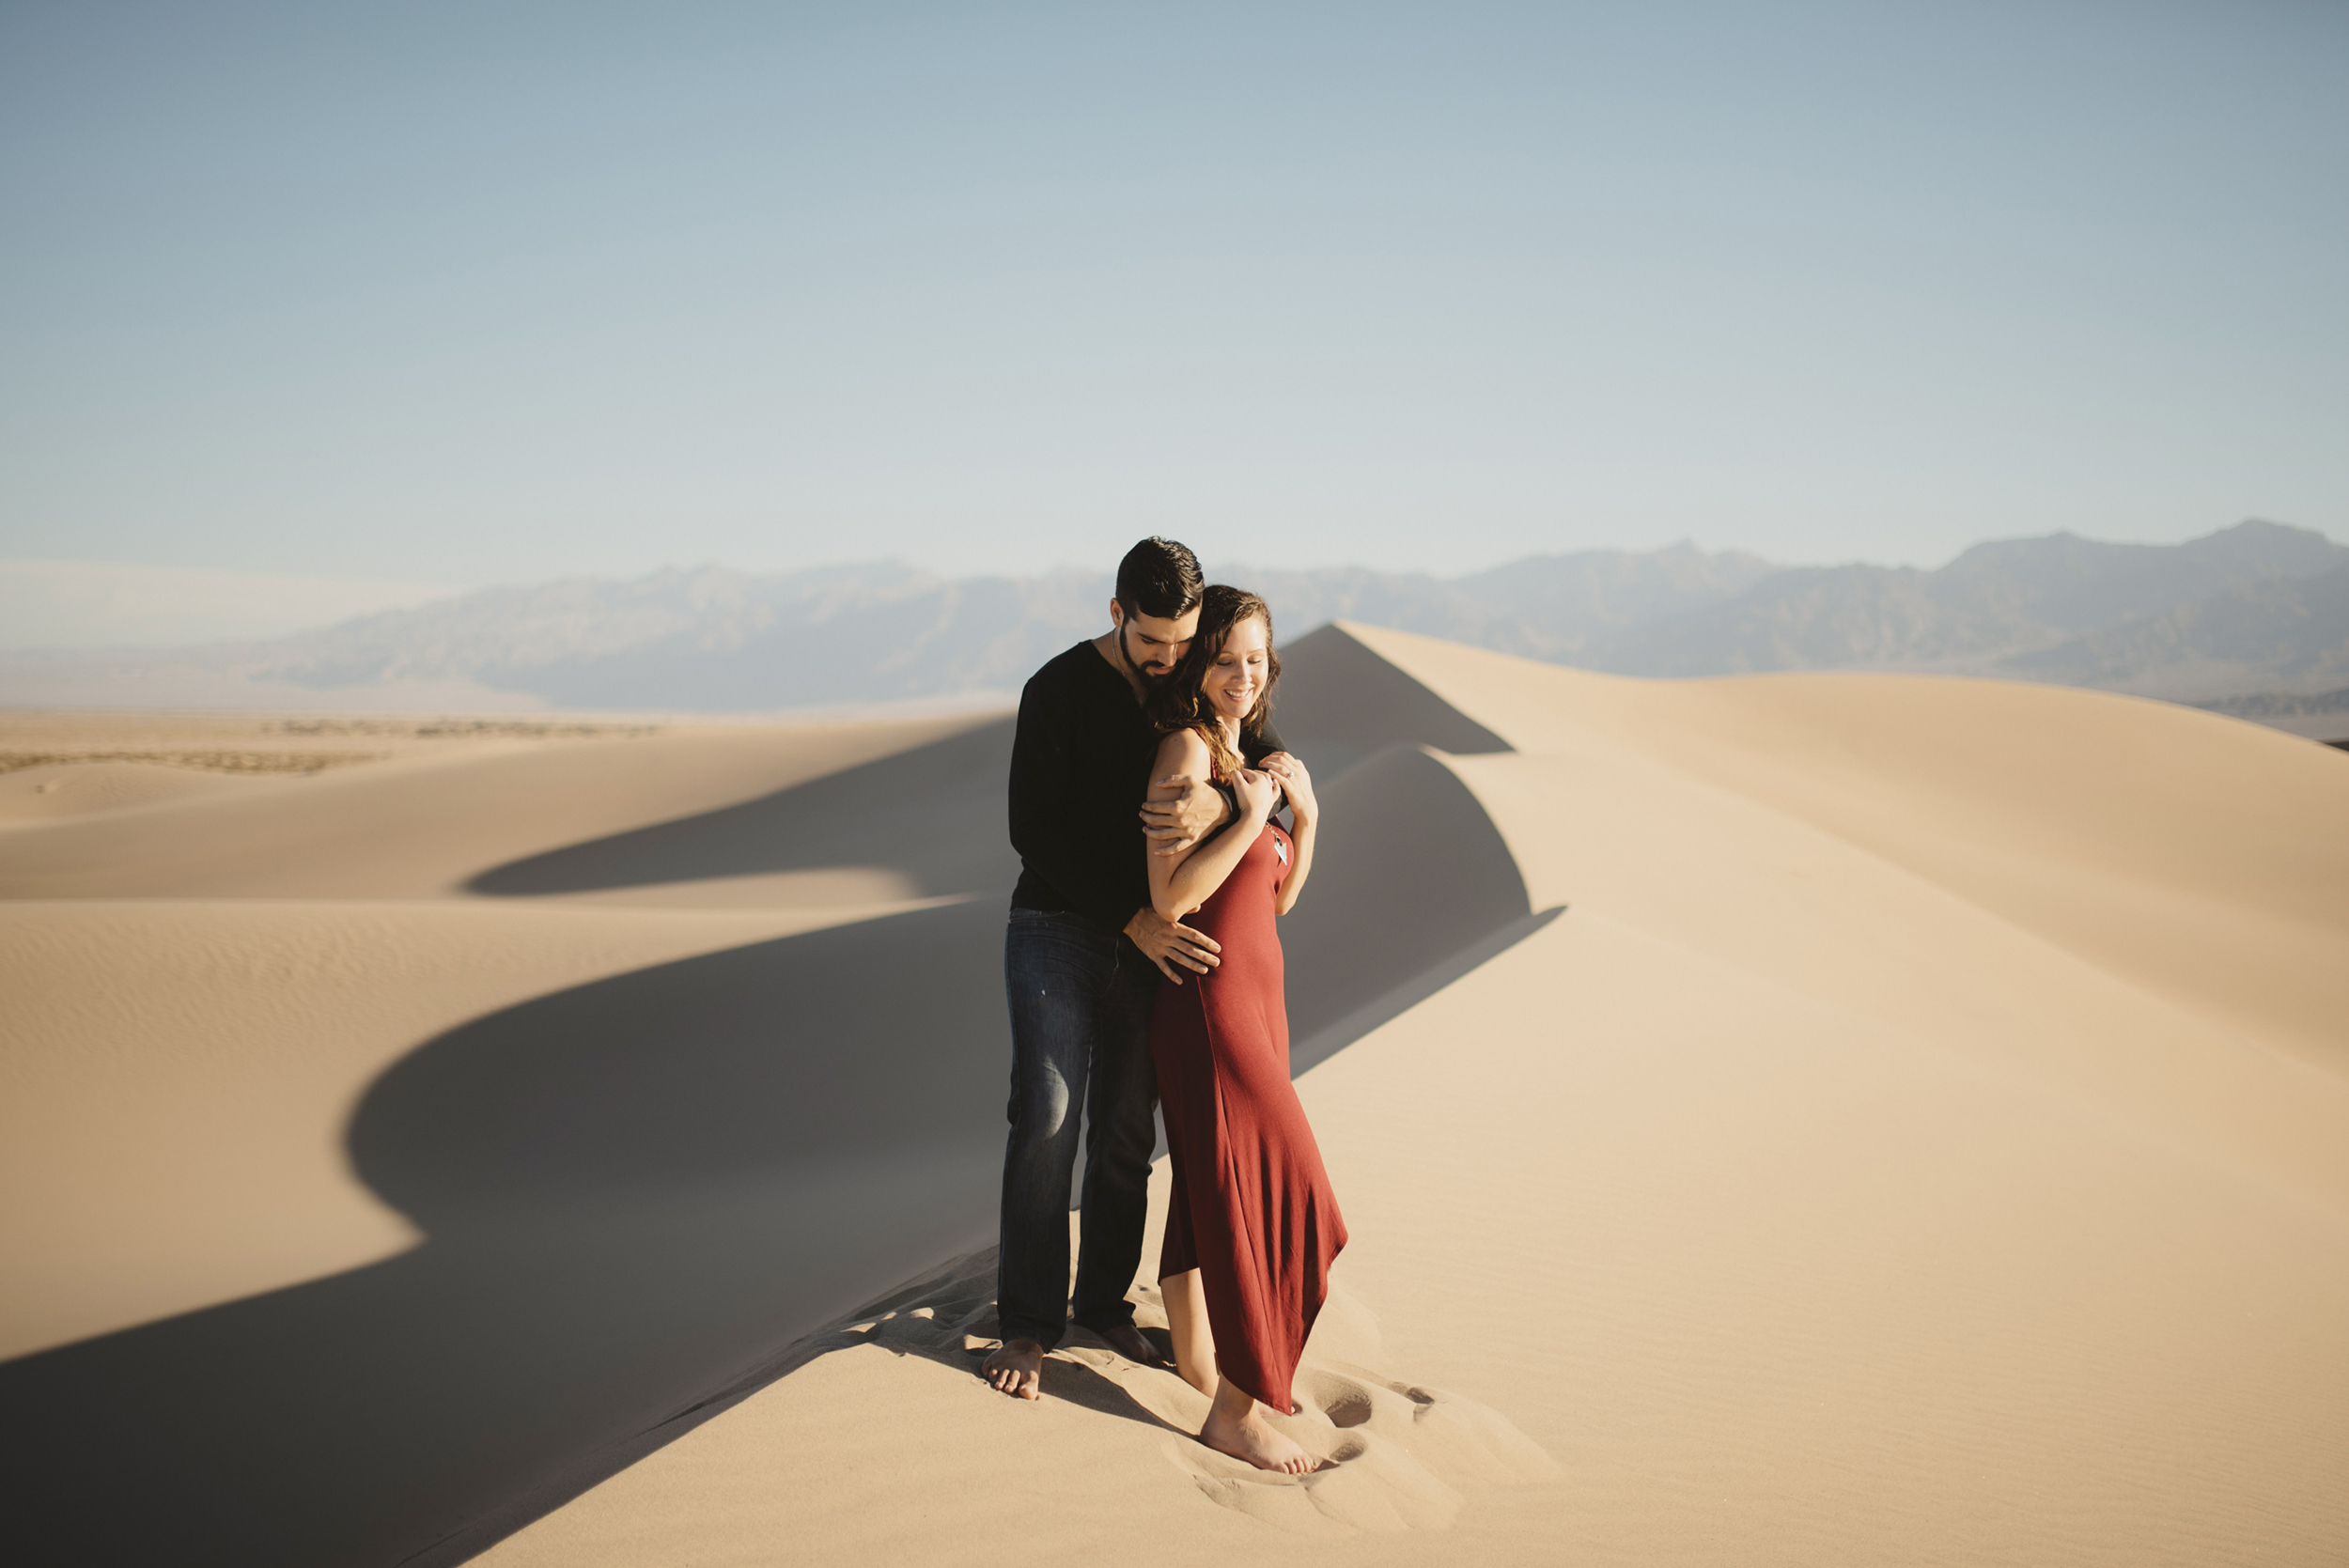 Death Valley California Desert Adventure Engagement Photographer201.jpg